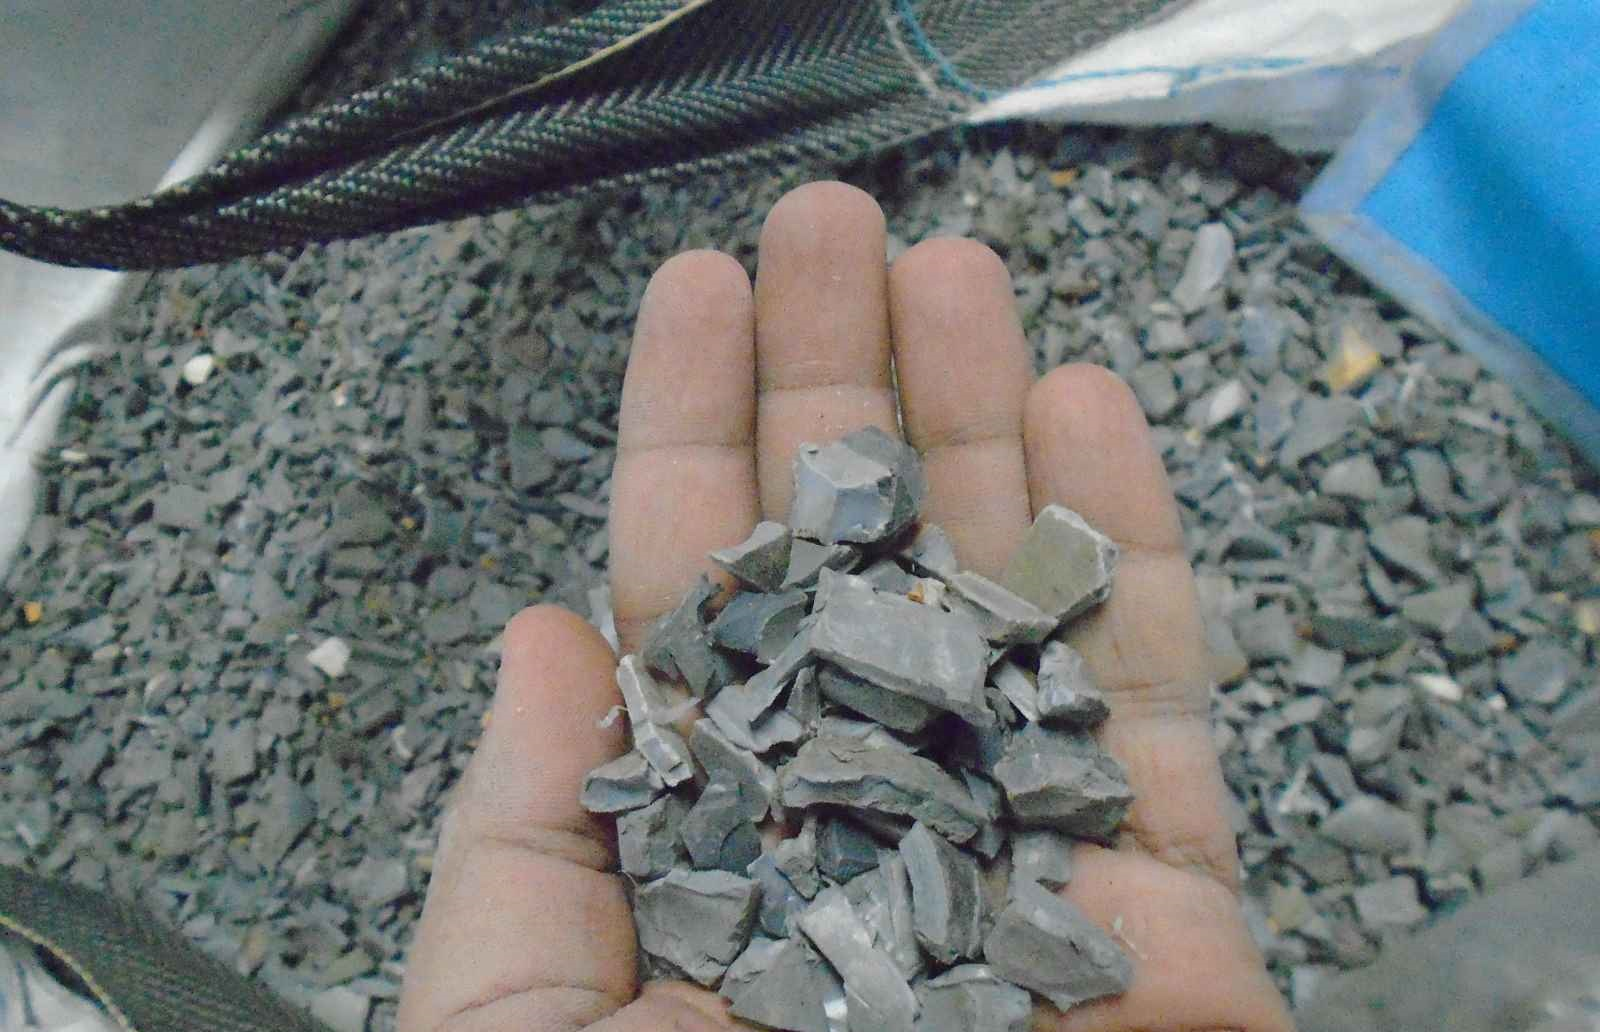 125 MT Grinded PVC Rigid Pipe Grey Color @ 540 US $ for Sale